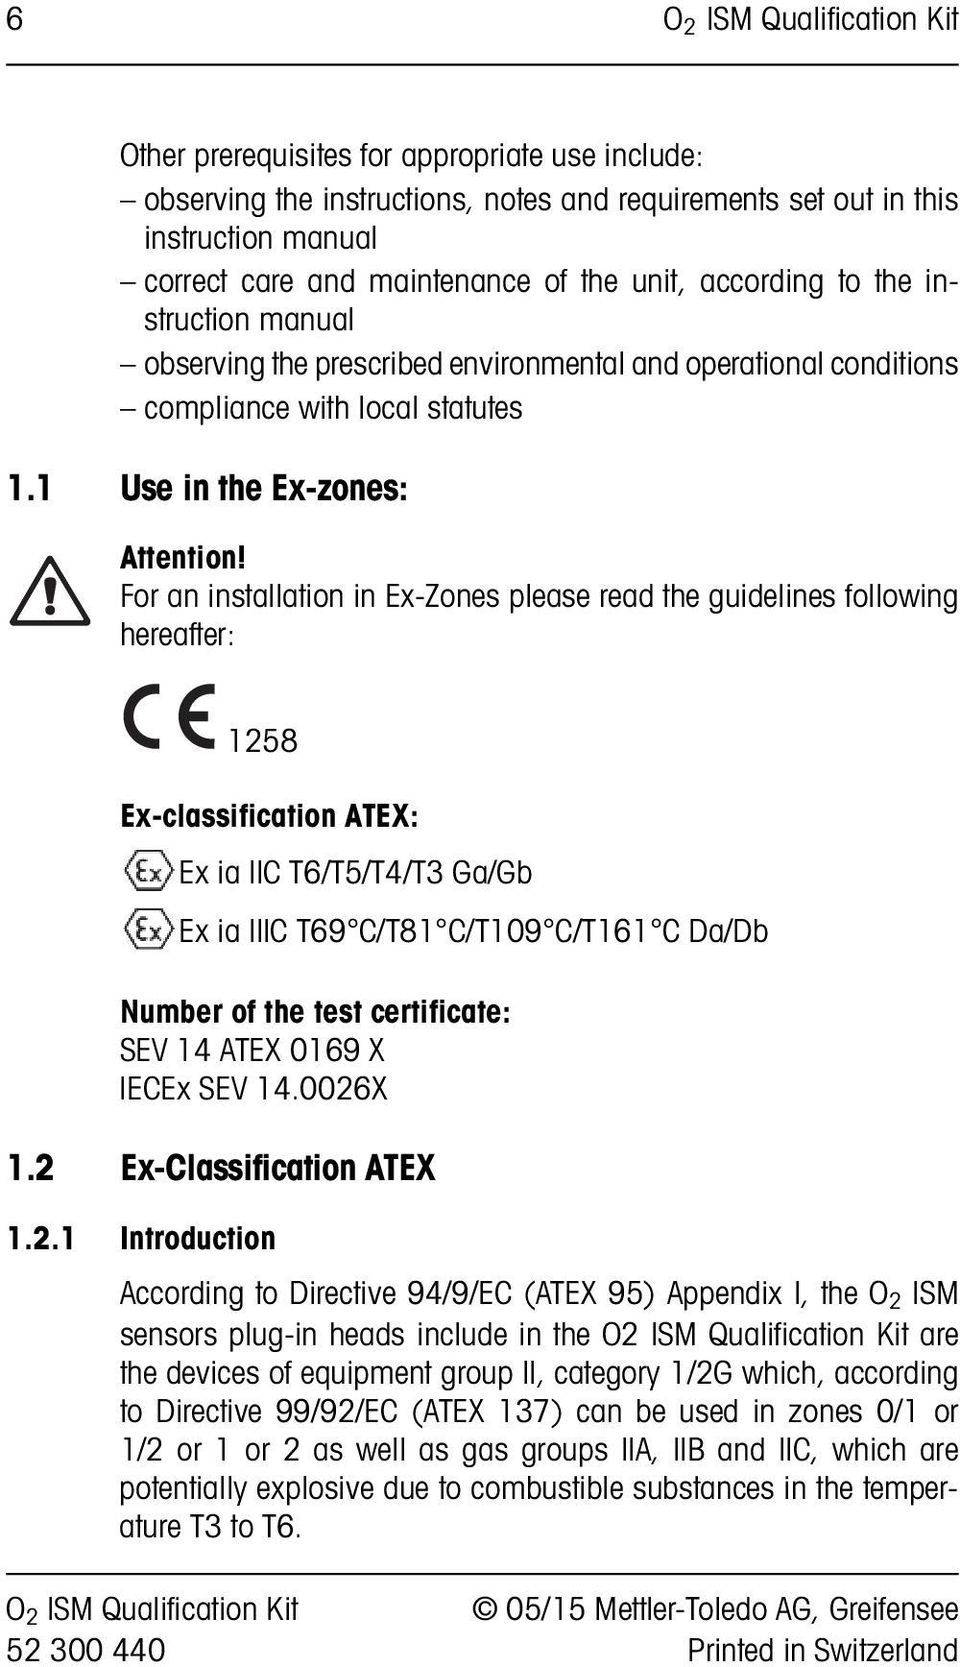 For an installation in Ex-Zones please read the guidelines following hereafter: 1258 Ex-classification ATEX: Ex ia IIC T6/T5/T4/T3 Ga/Gb Ex ia IIIC T69 C/T81 C/T109 C/T161 C Da/Db Number of the test